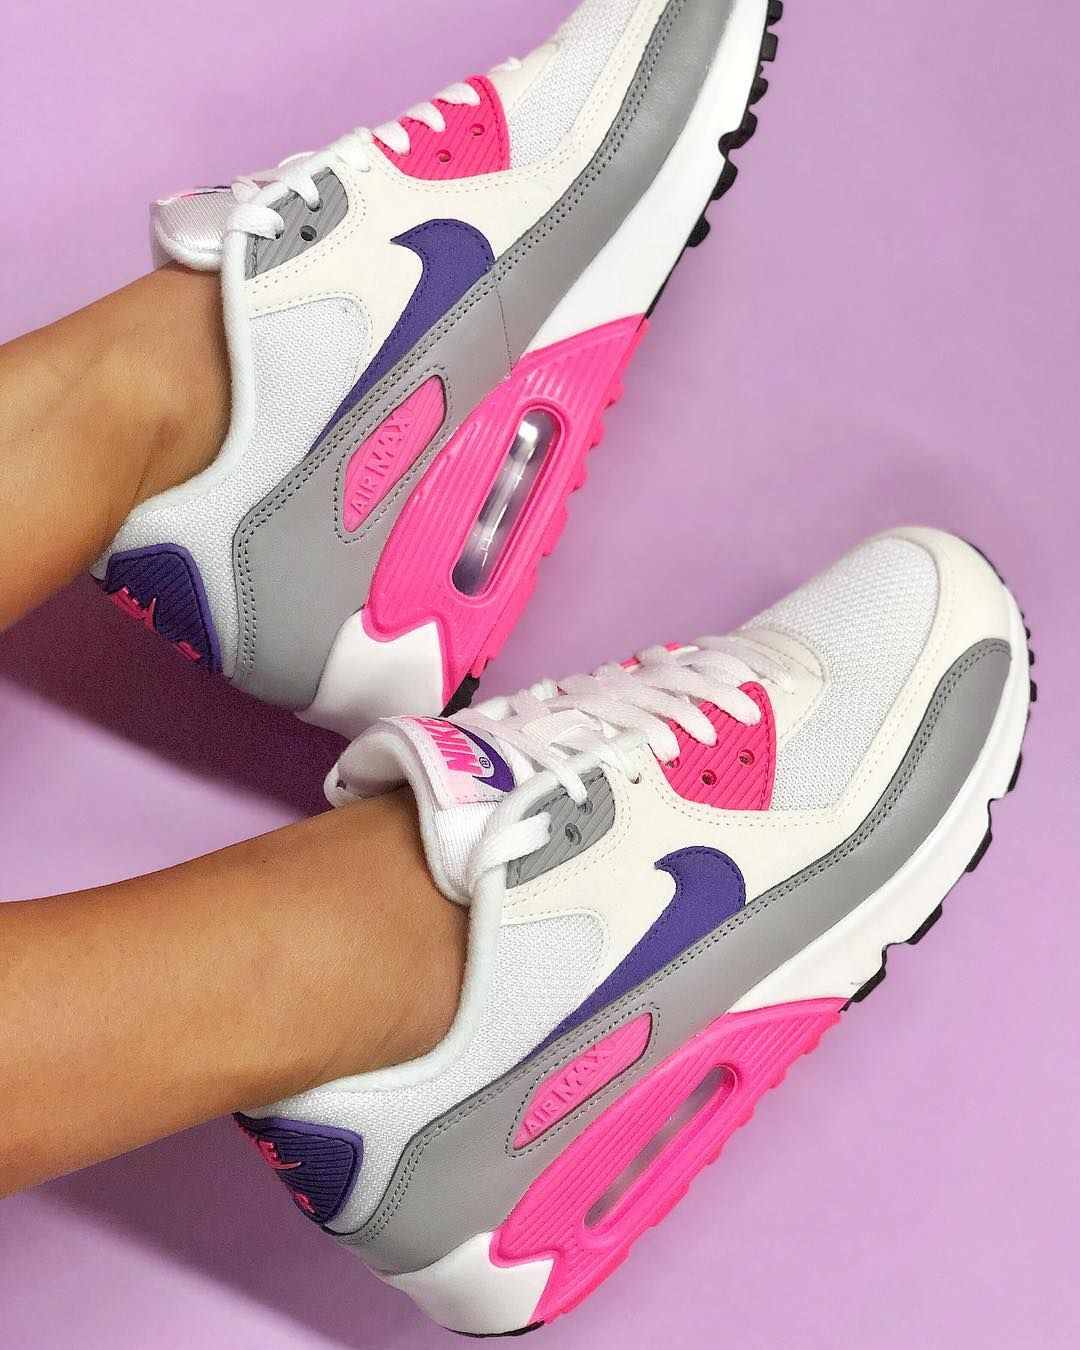 new arrivals ac71b 5db30 We take a look at this classic Nike Air Max 90 women's shoe in a winning  colour combination of white, purple, grey and pink.